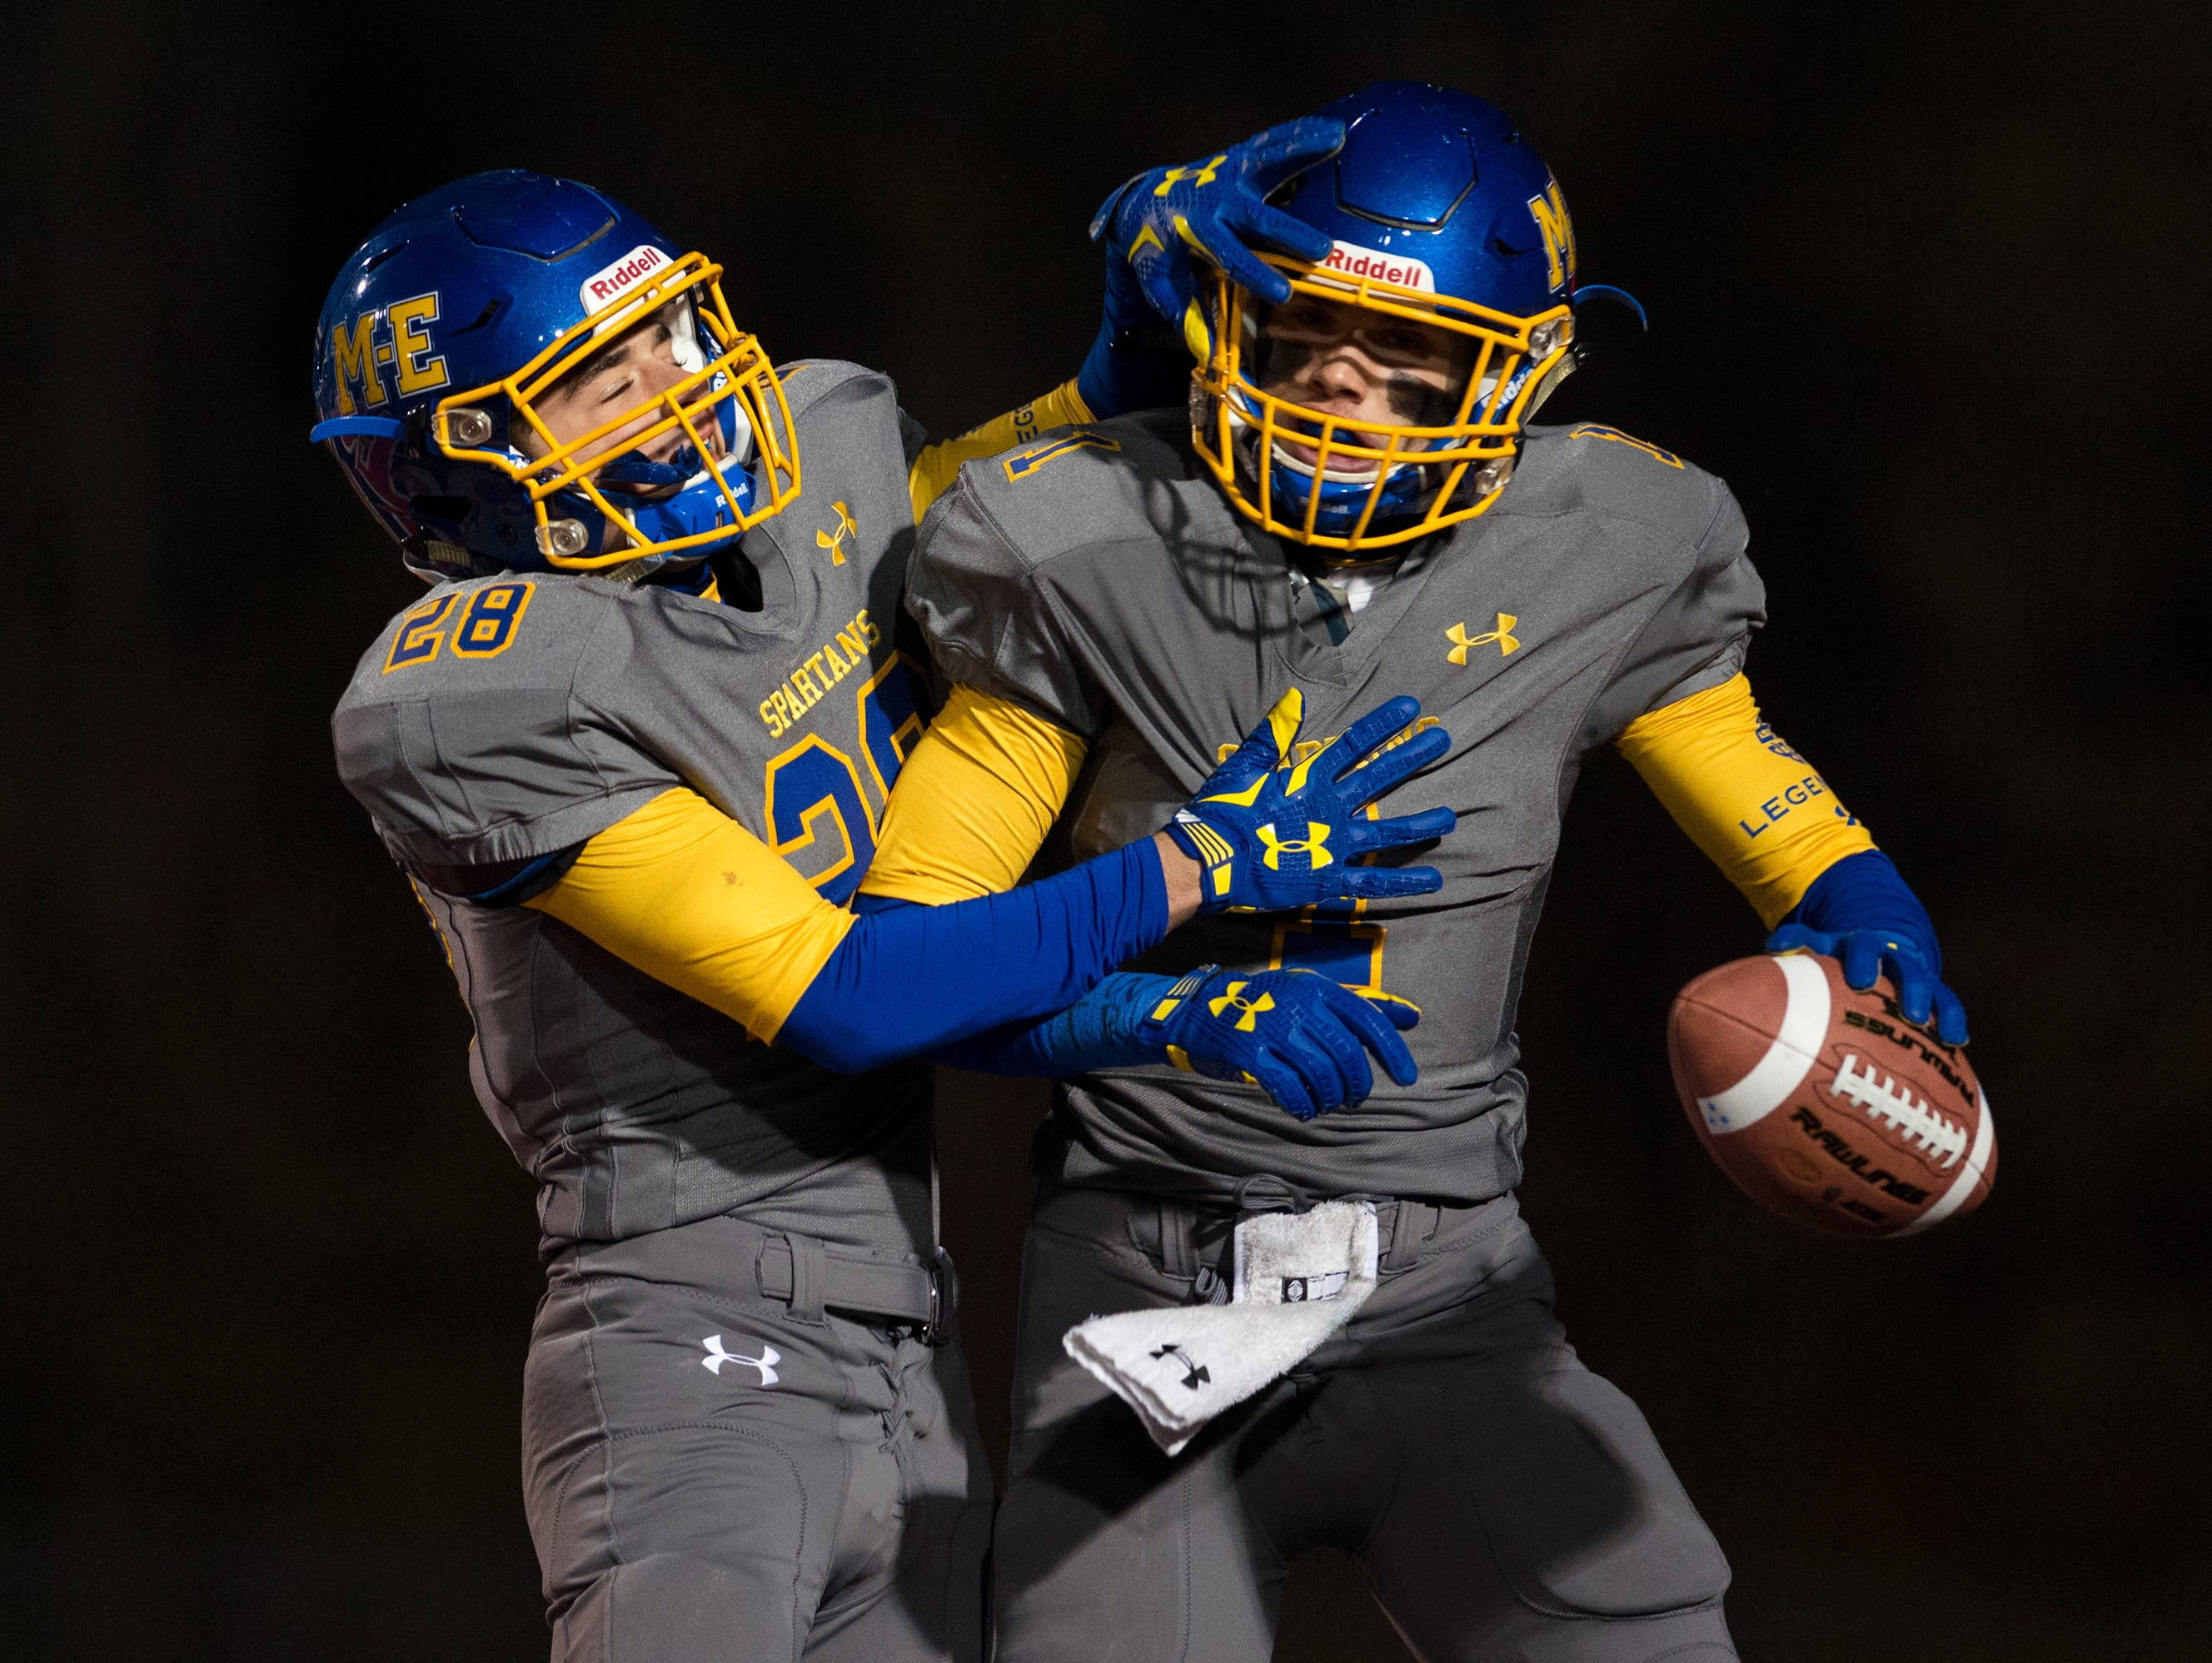 Maine-Endwell running back Andrew Grassi, left, celebrates wide receiver Michael Palmer's touchdown reception during the first quarter of M-E's Class A state quarterfinal playoff game against Whitesboro on Friday in Binghamton.